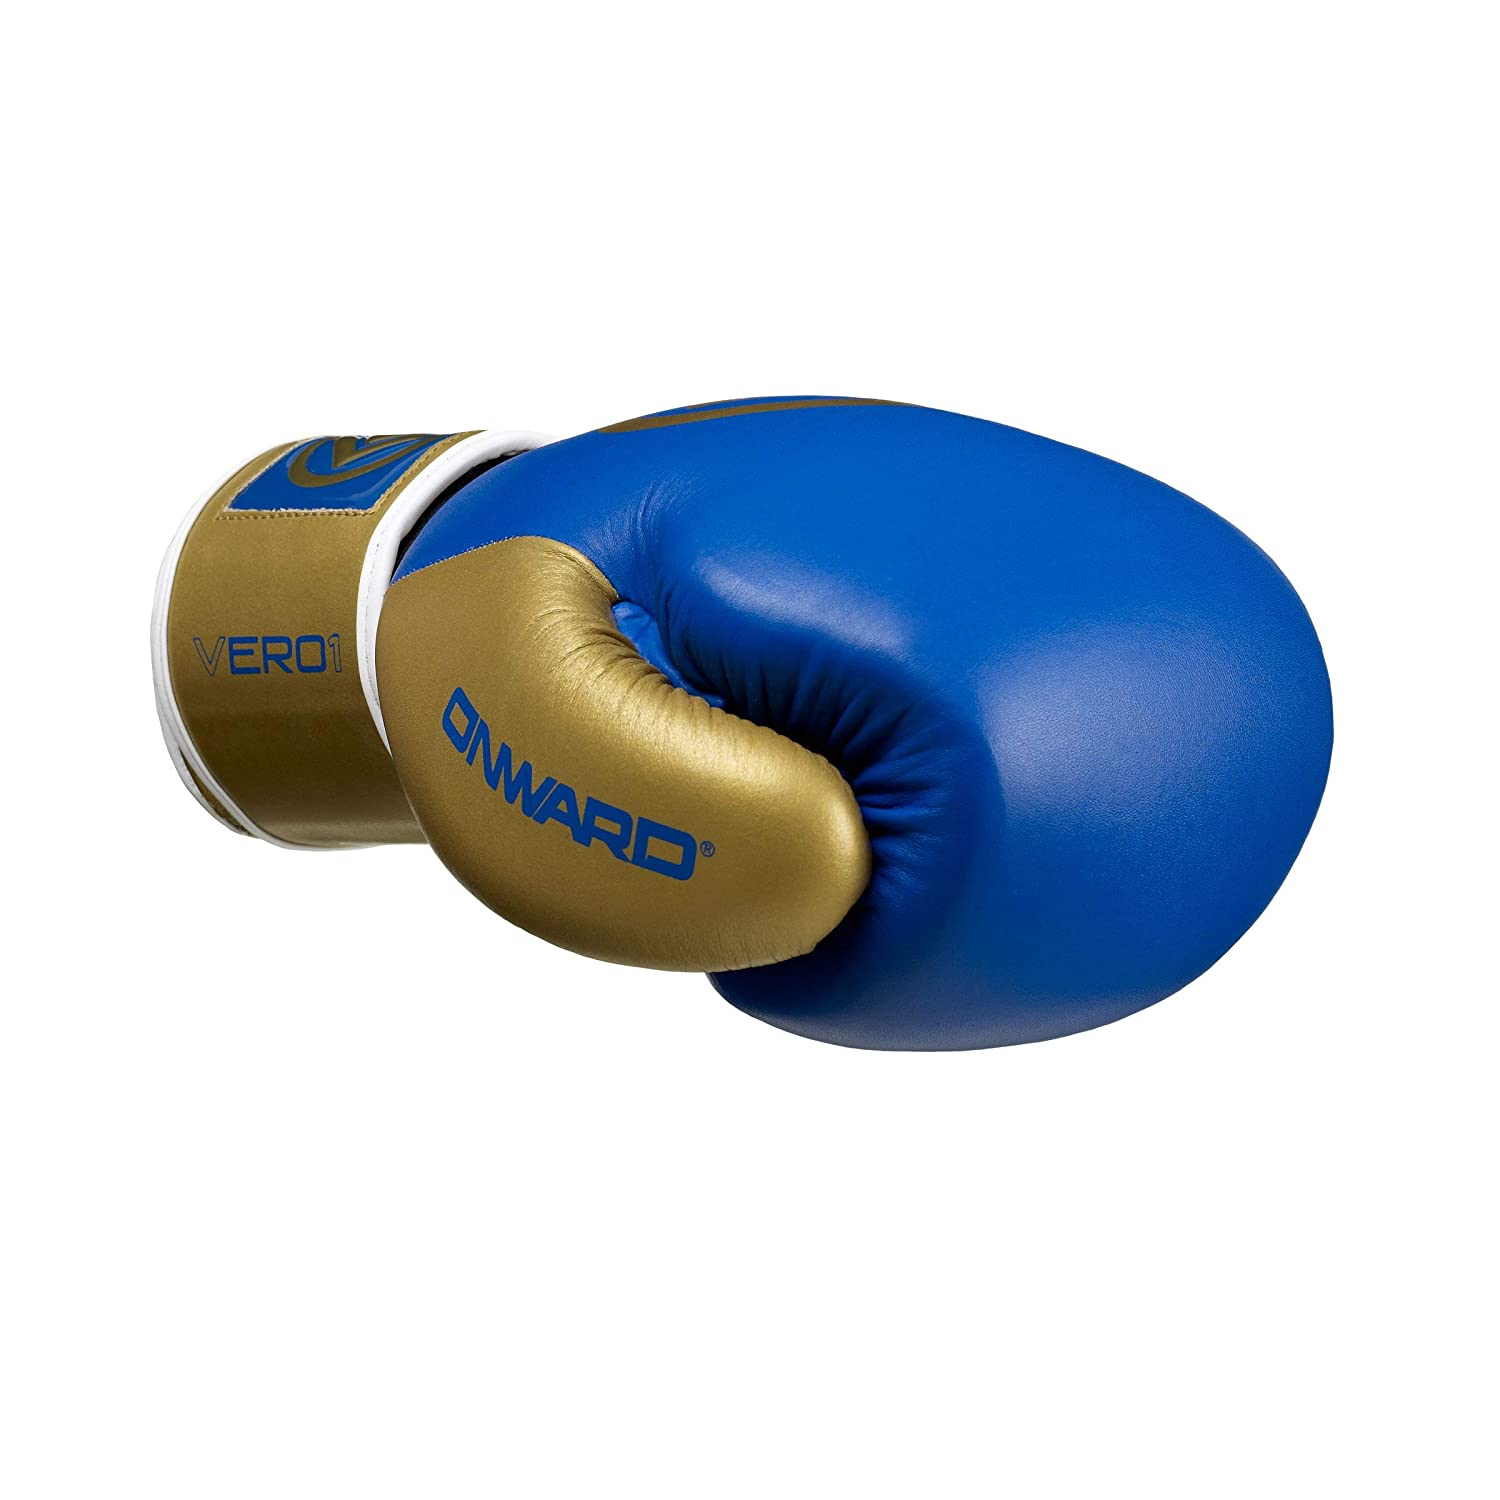 Onward Leather Professional Boxing Gloves Boxing Training Muay Thai Heavy Bag Sparring VERO PRO Fight Gloves Kickboxing MMA Gloves